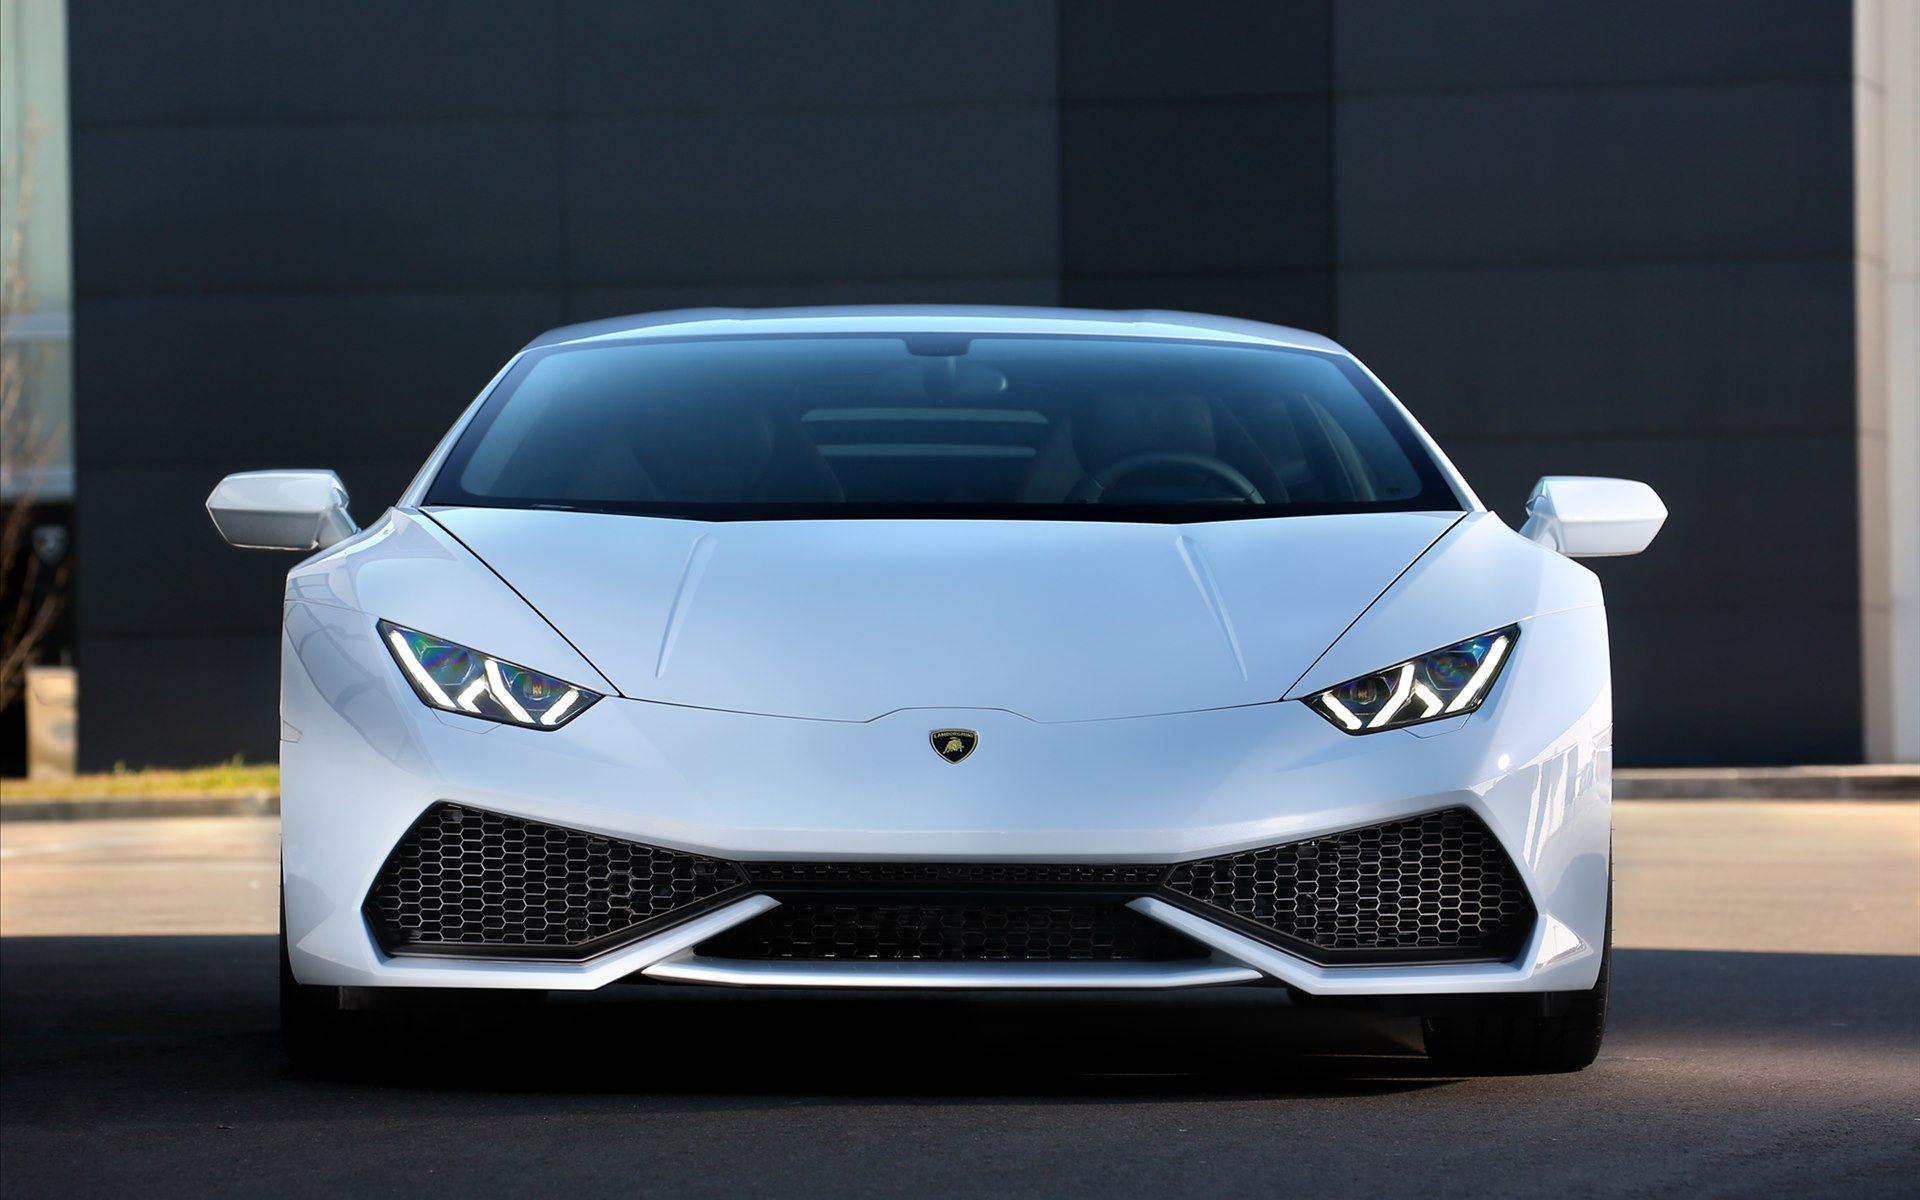 2015 Lamborghini Huracan LP 610 4 Wallpaper | HD Car Wallpapers 677